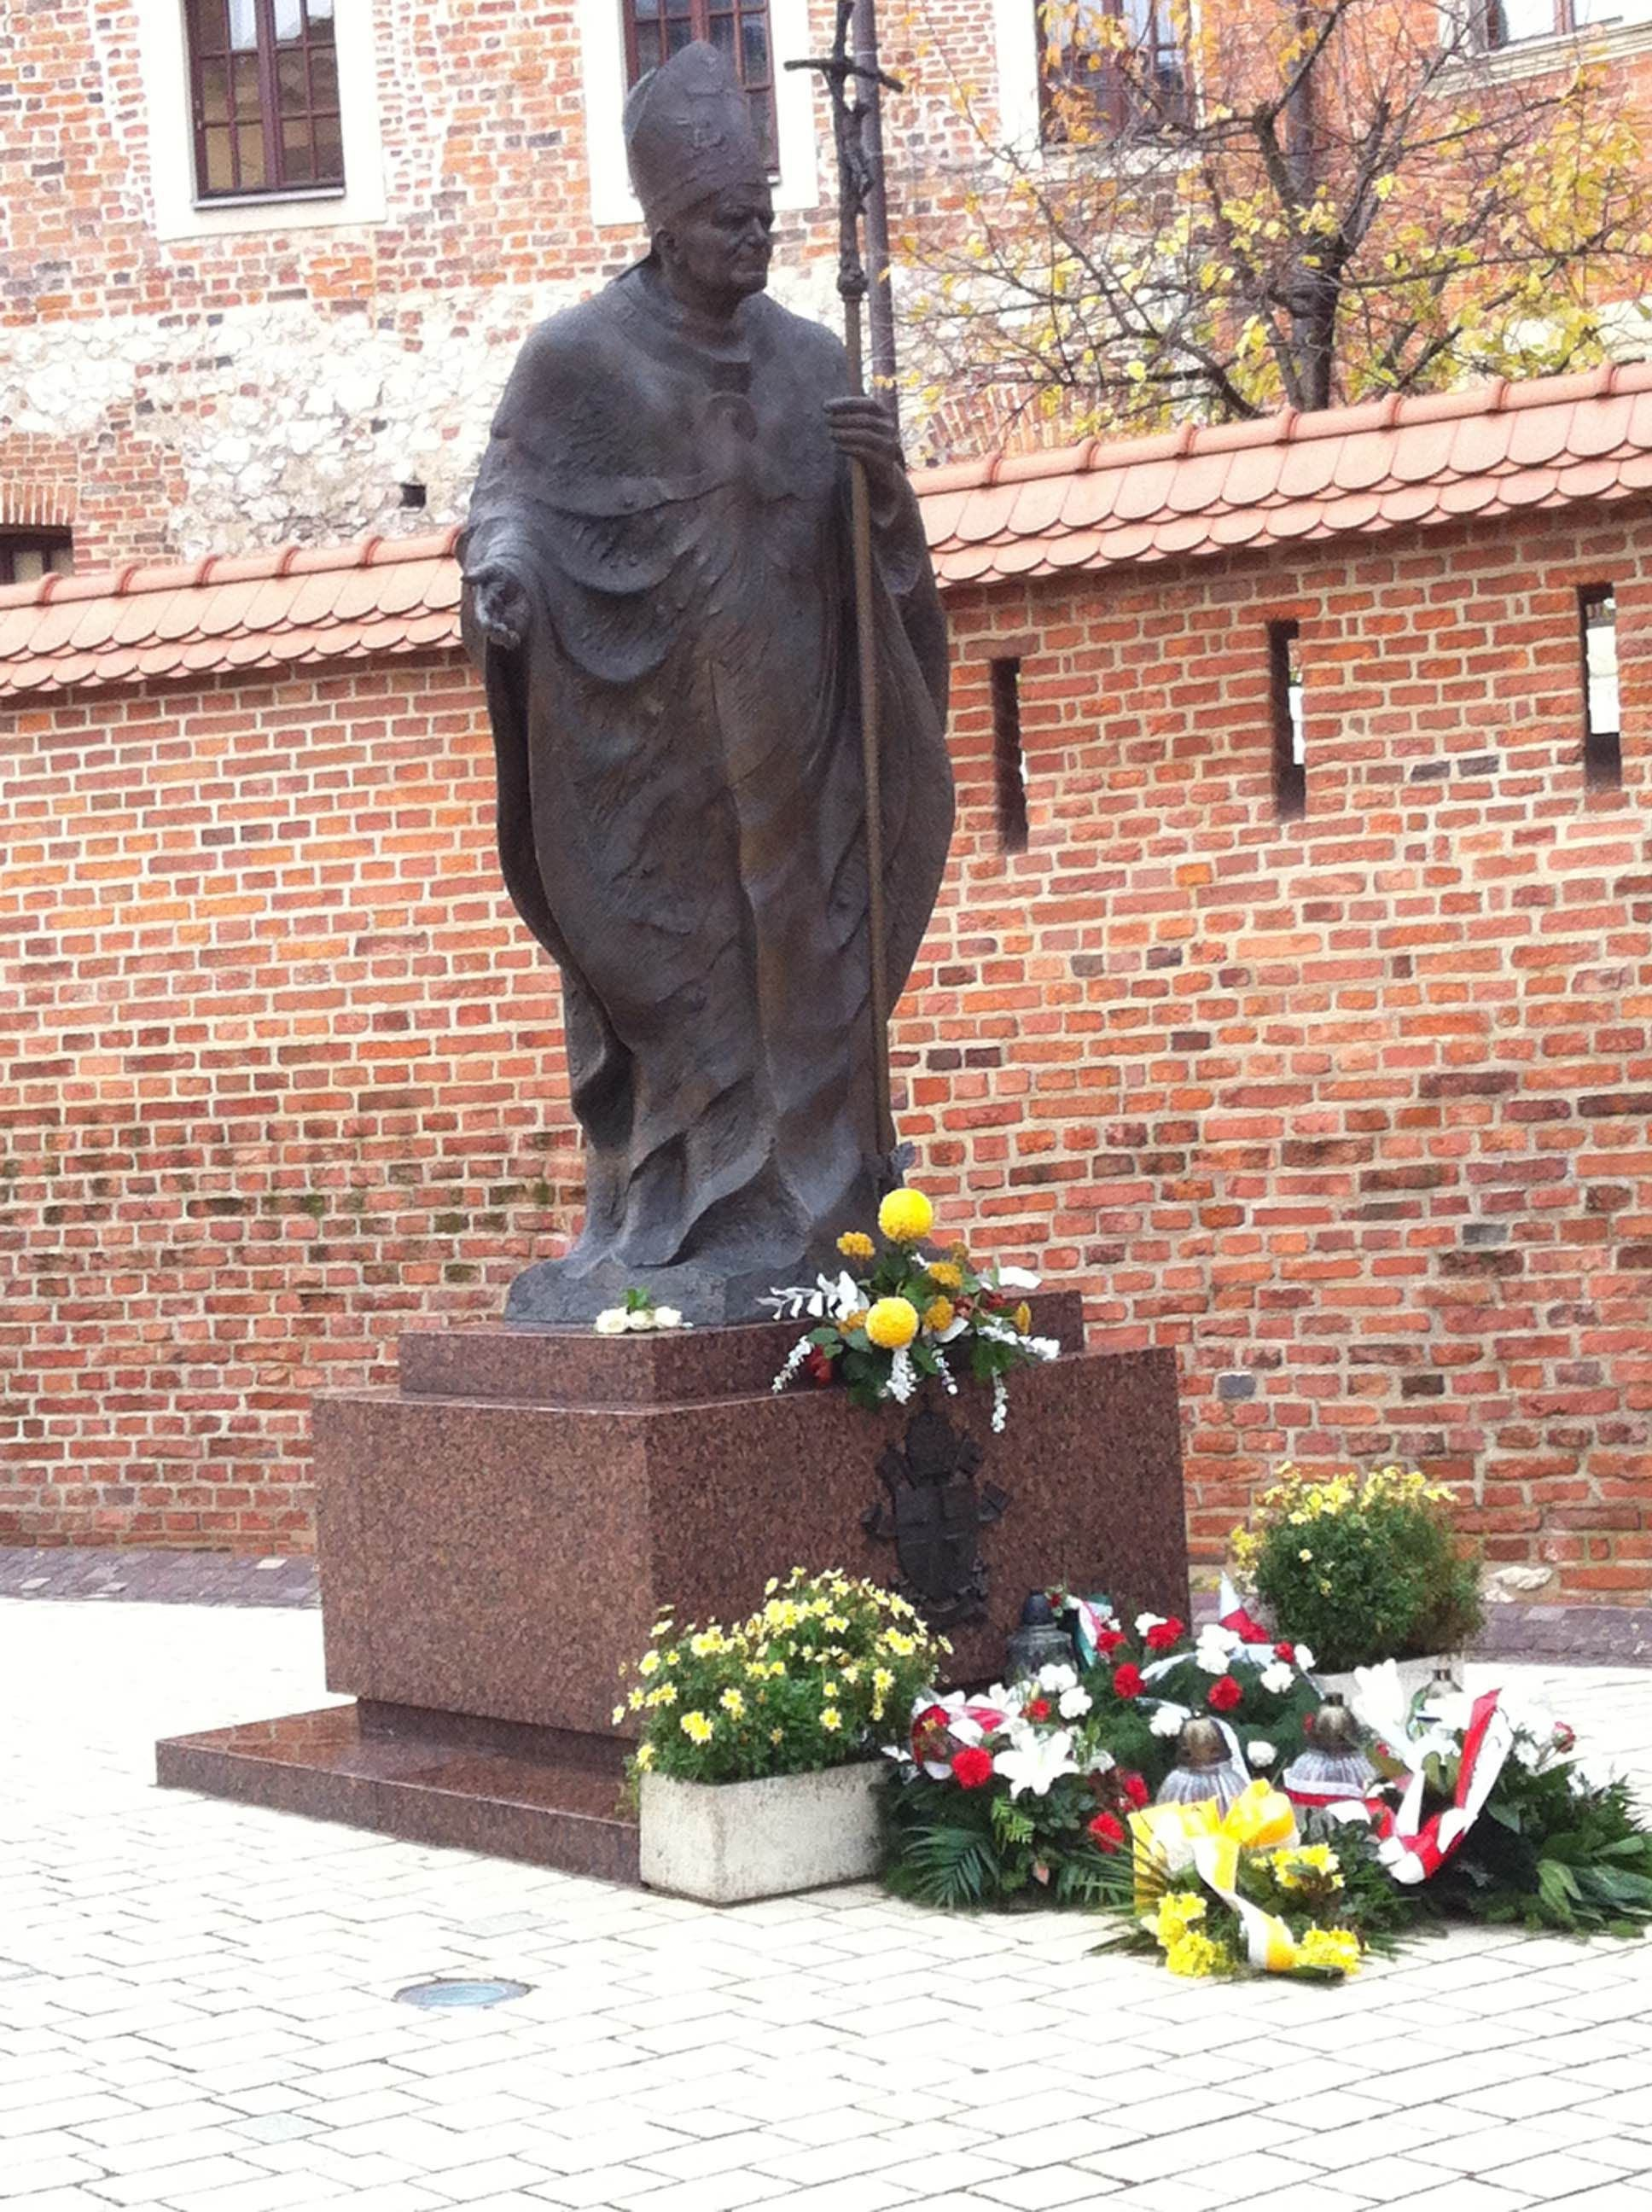 Estatua en Catedral Wawel